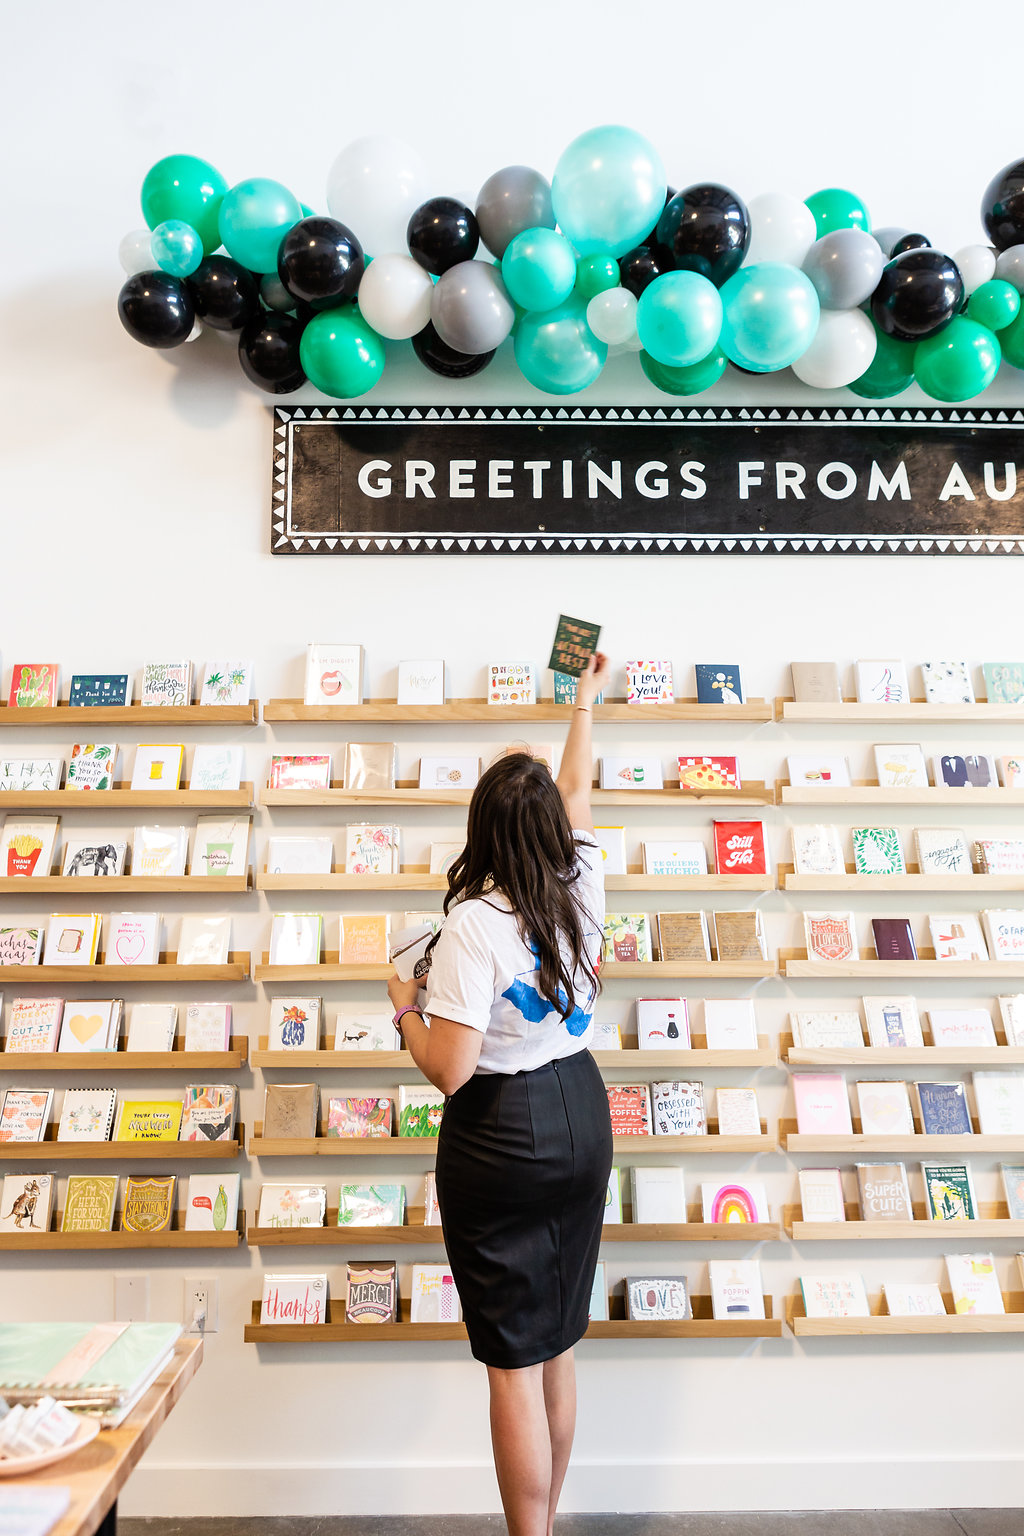 Largest card wall + paper shop in Austin, Texas.